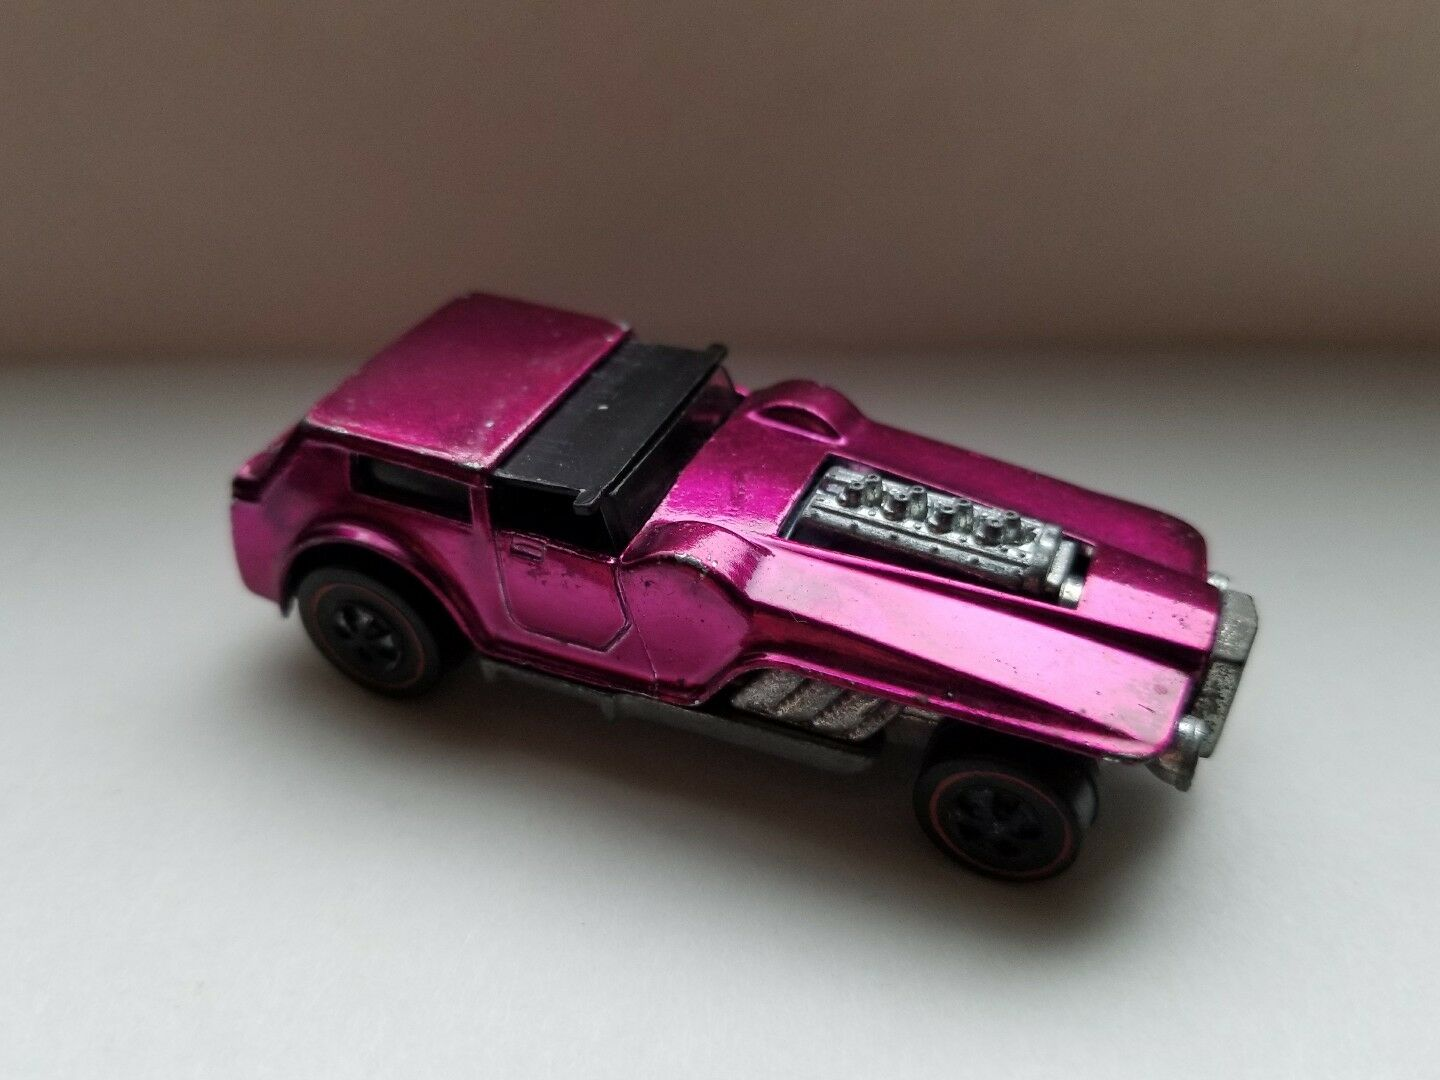 HOT WHEELS ORIGINAL VINTAGE rossoLINE 1971 THE HOOD U.S. Magenta NICE MATTEL